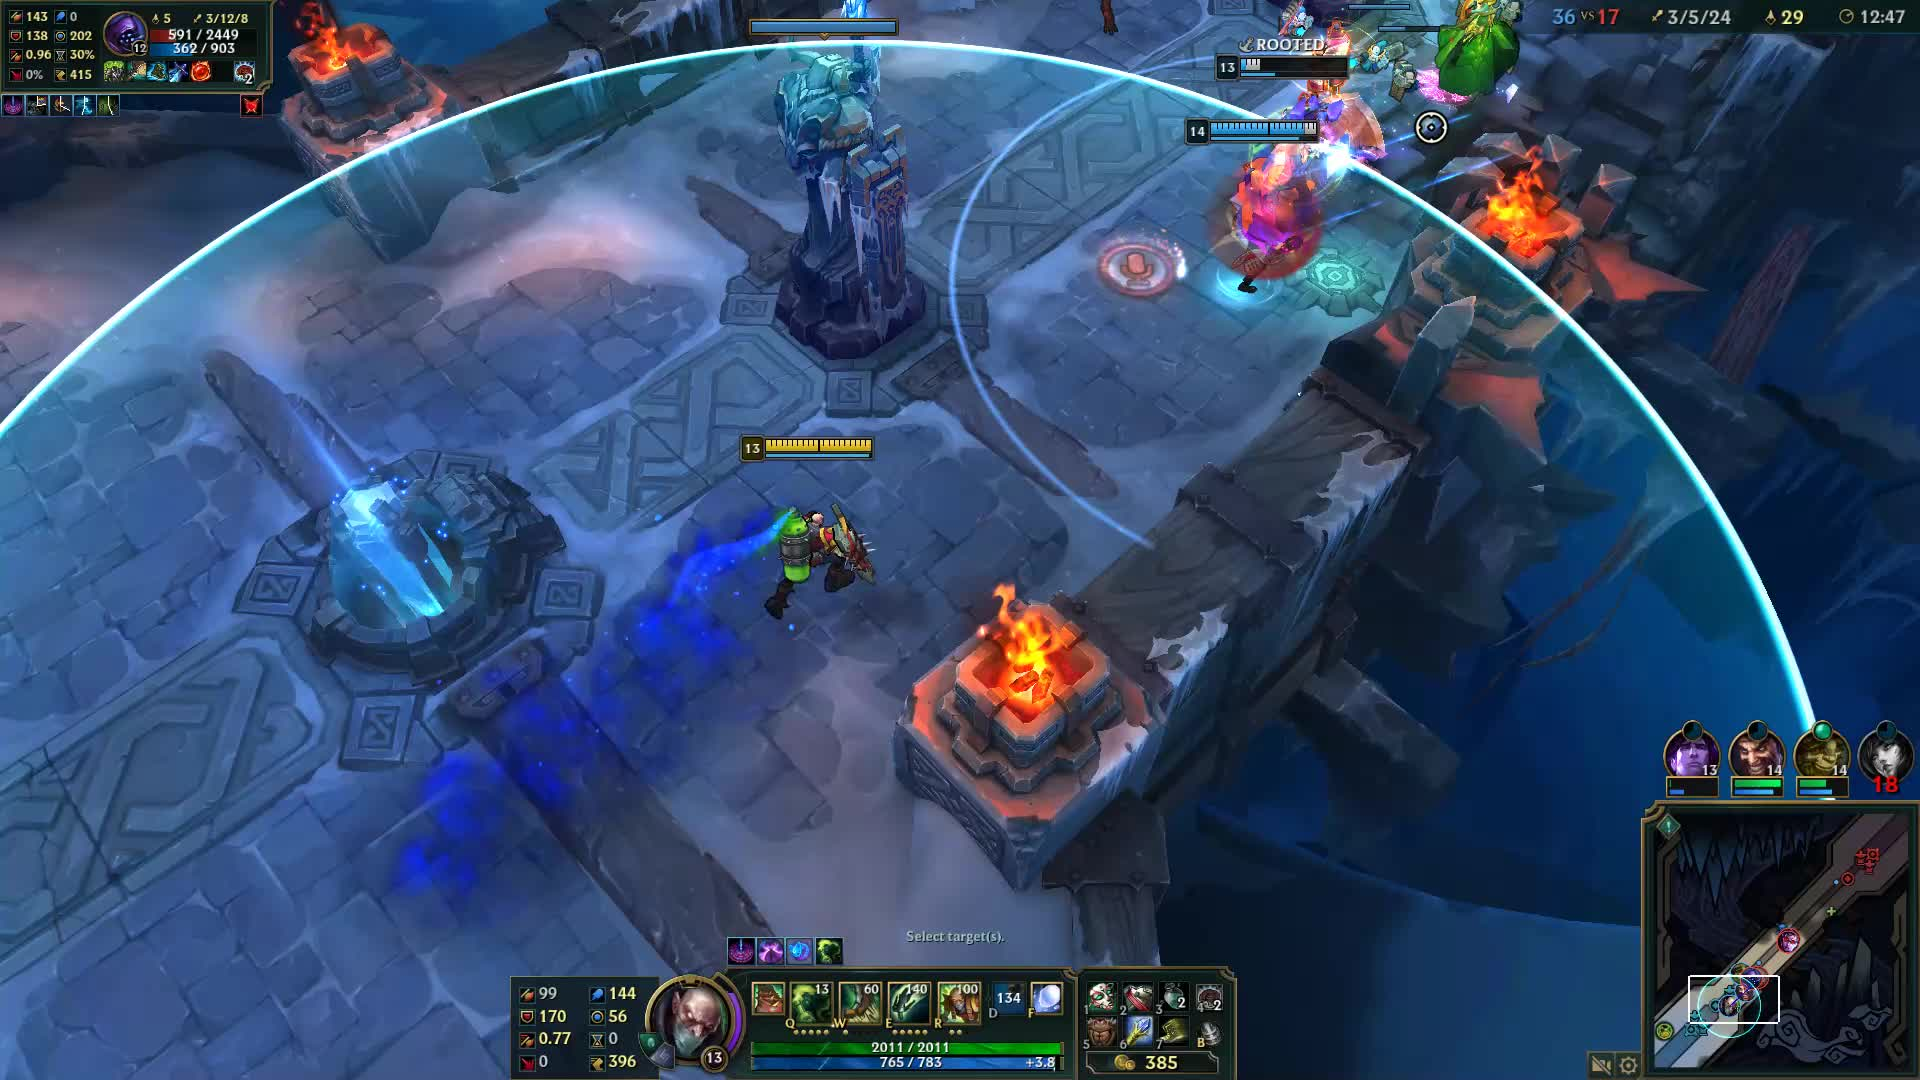 Assist, Gaming, League of Legends, Singed, Win, Kappa GIFs